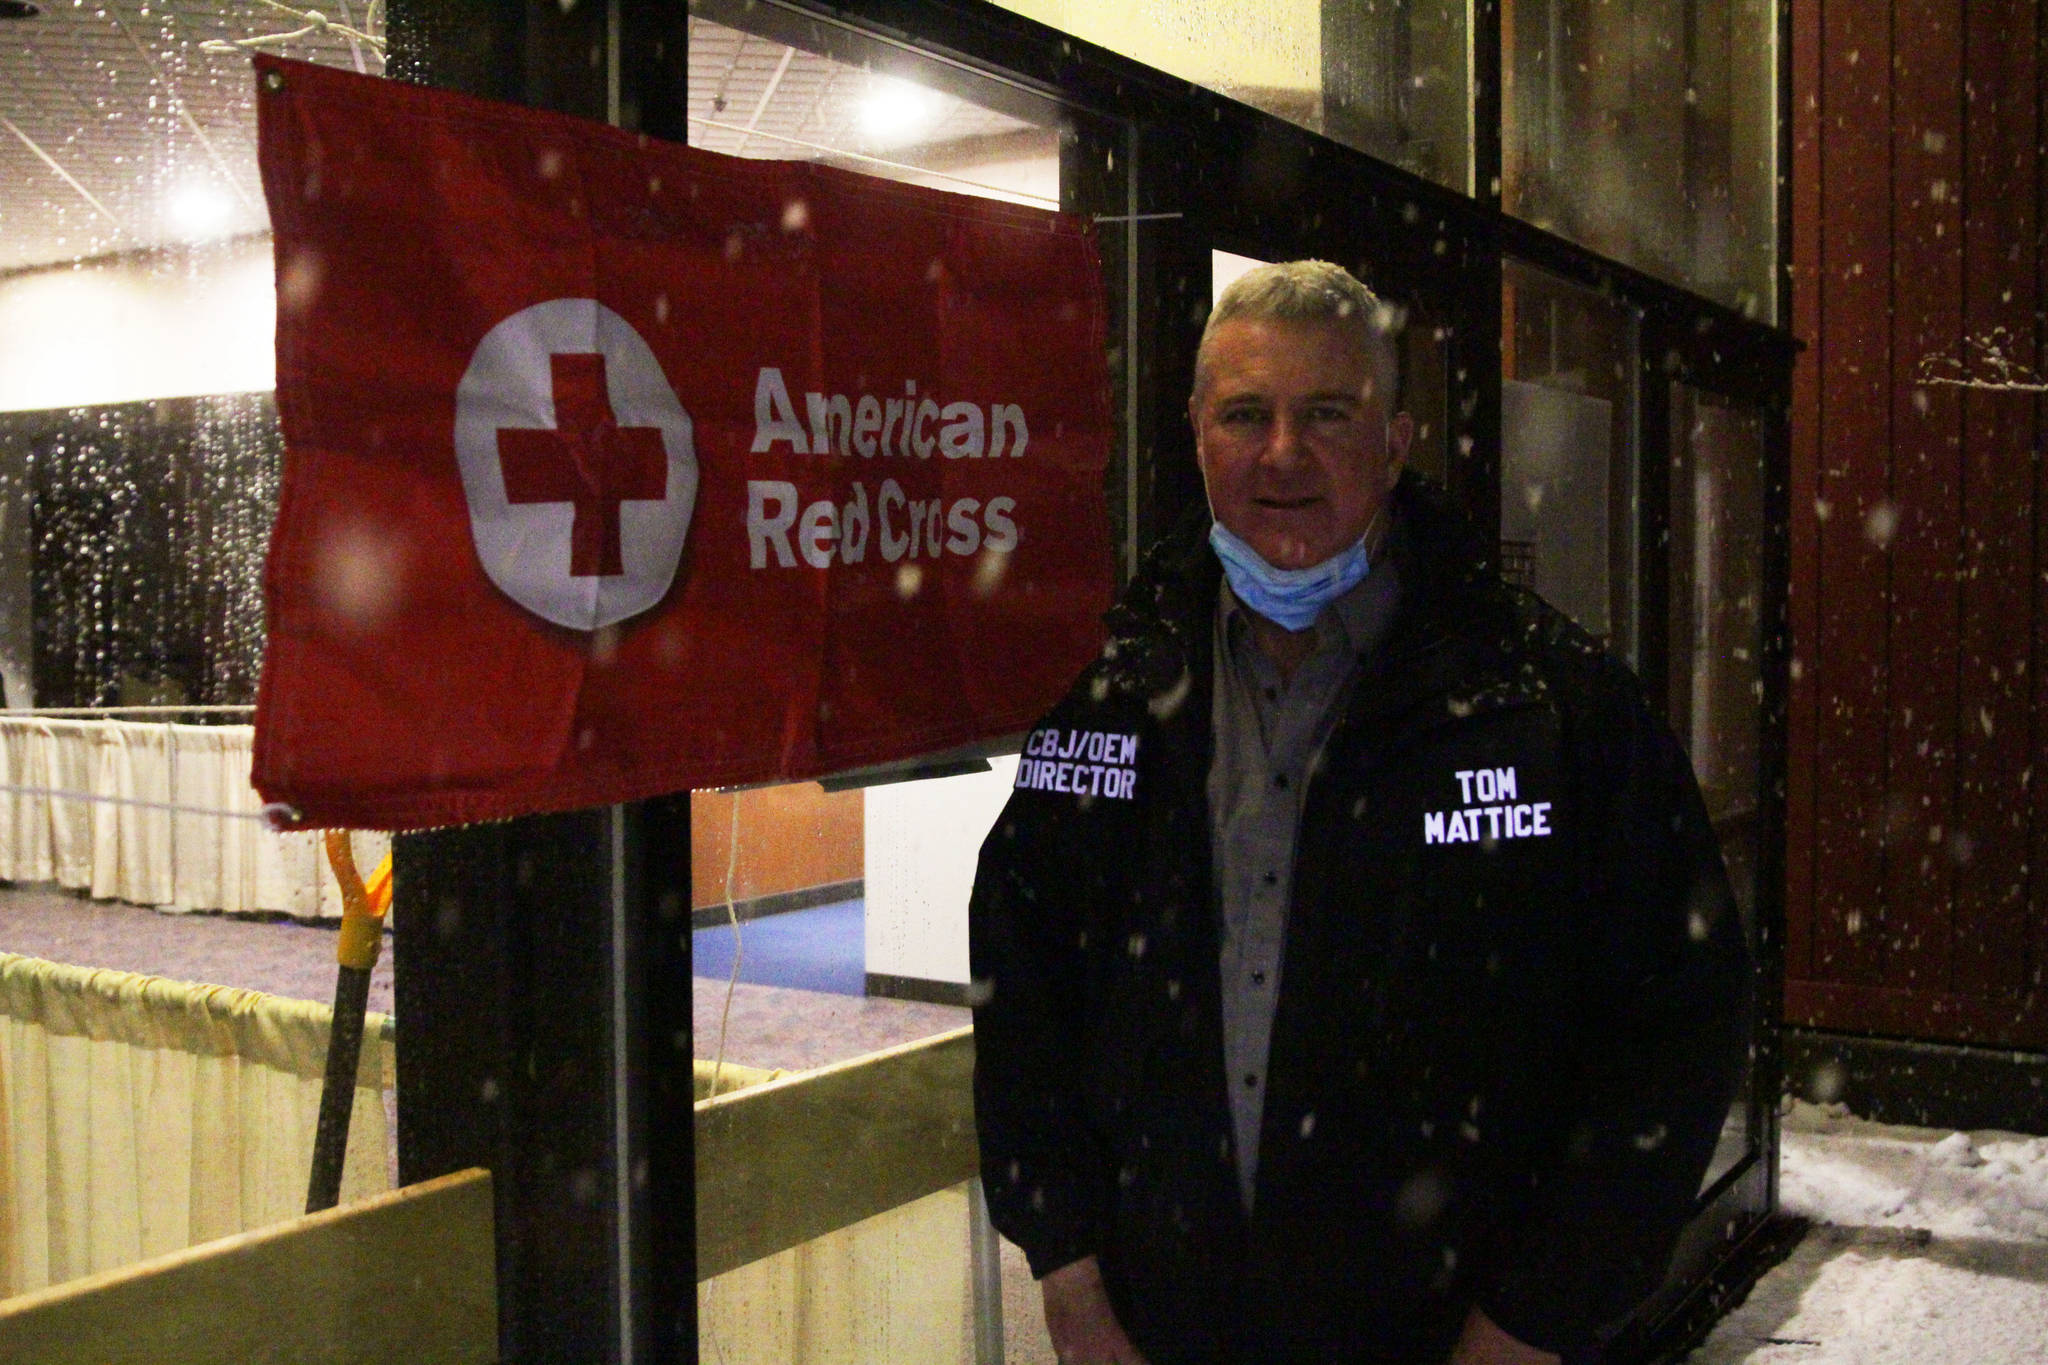 City and Borough of Juneau emergency program manager Tom Mattice stands outside Centennial Hall, appropriated as an evacuation shelter for those in the path of possible avalanches on Feb. 27, 2021. (Michael S. Lockett / Juneau Empire)